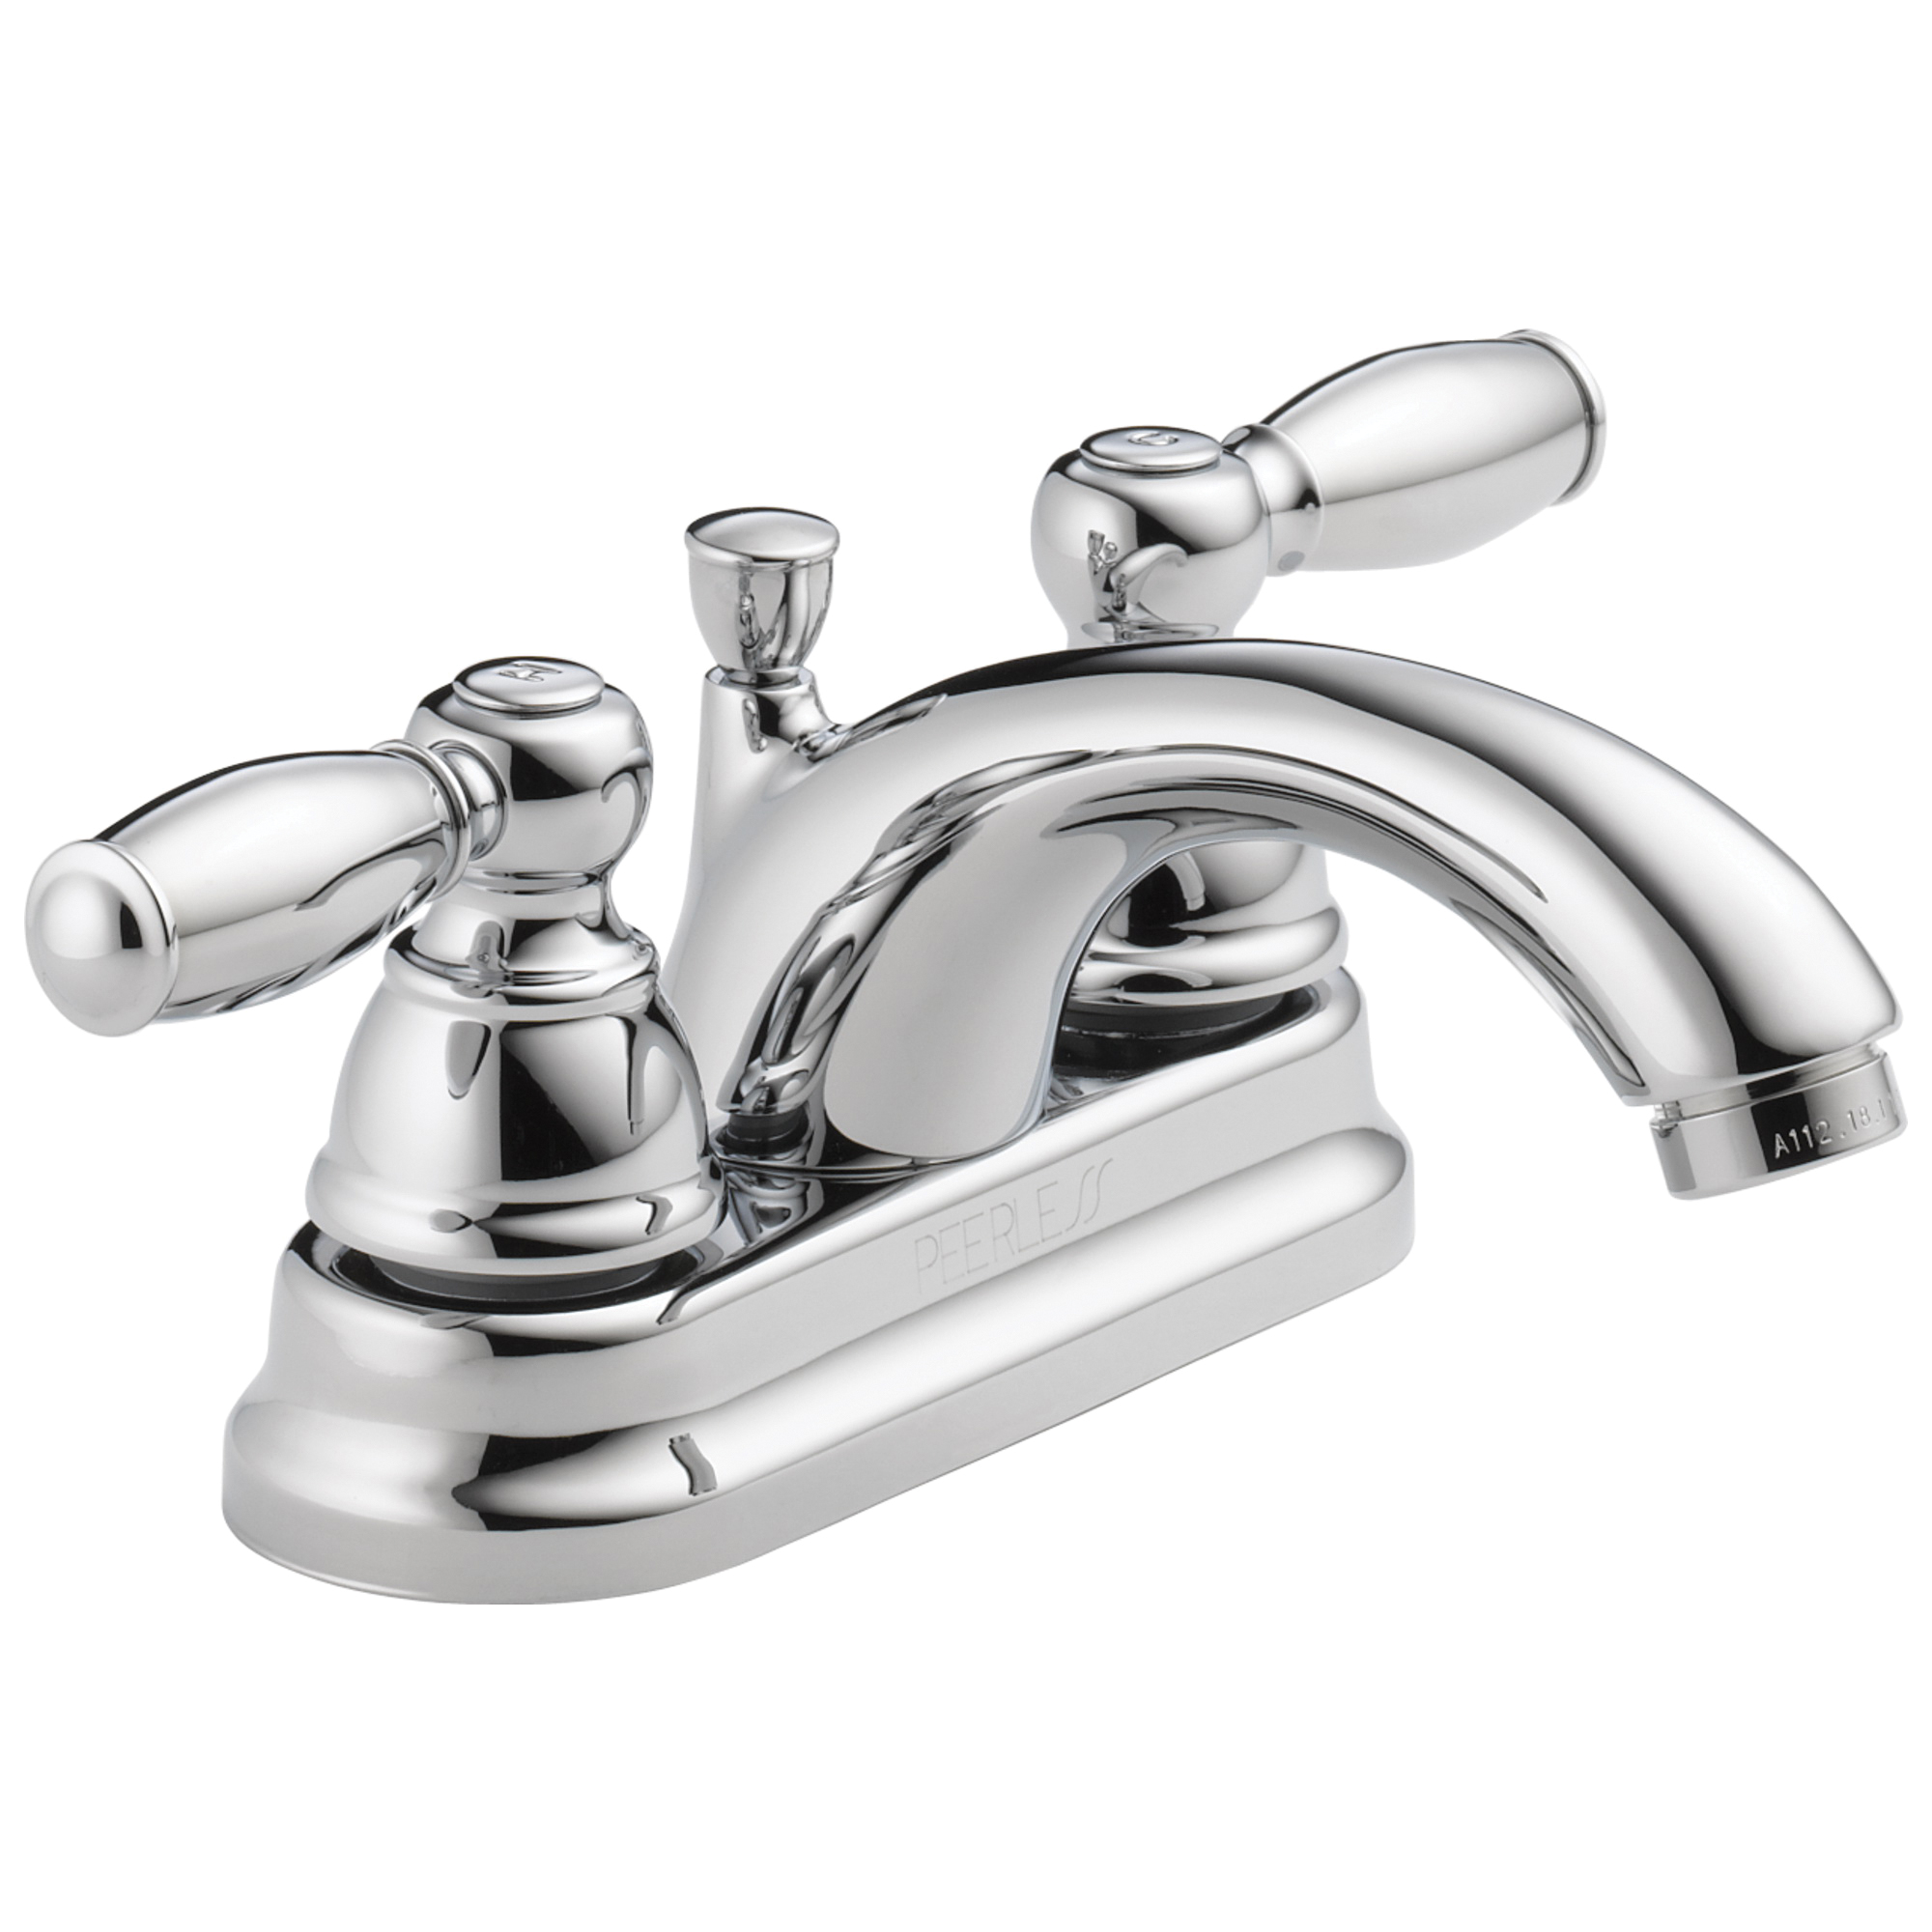 Peerless® P299675LF Centerset Lavatory Faucet, Chrome Plated, 2 Handles, Pop-Up Drain, 1.2 gpm